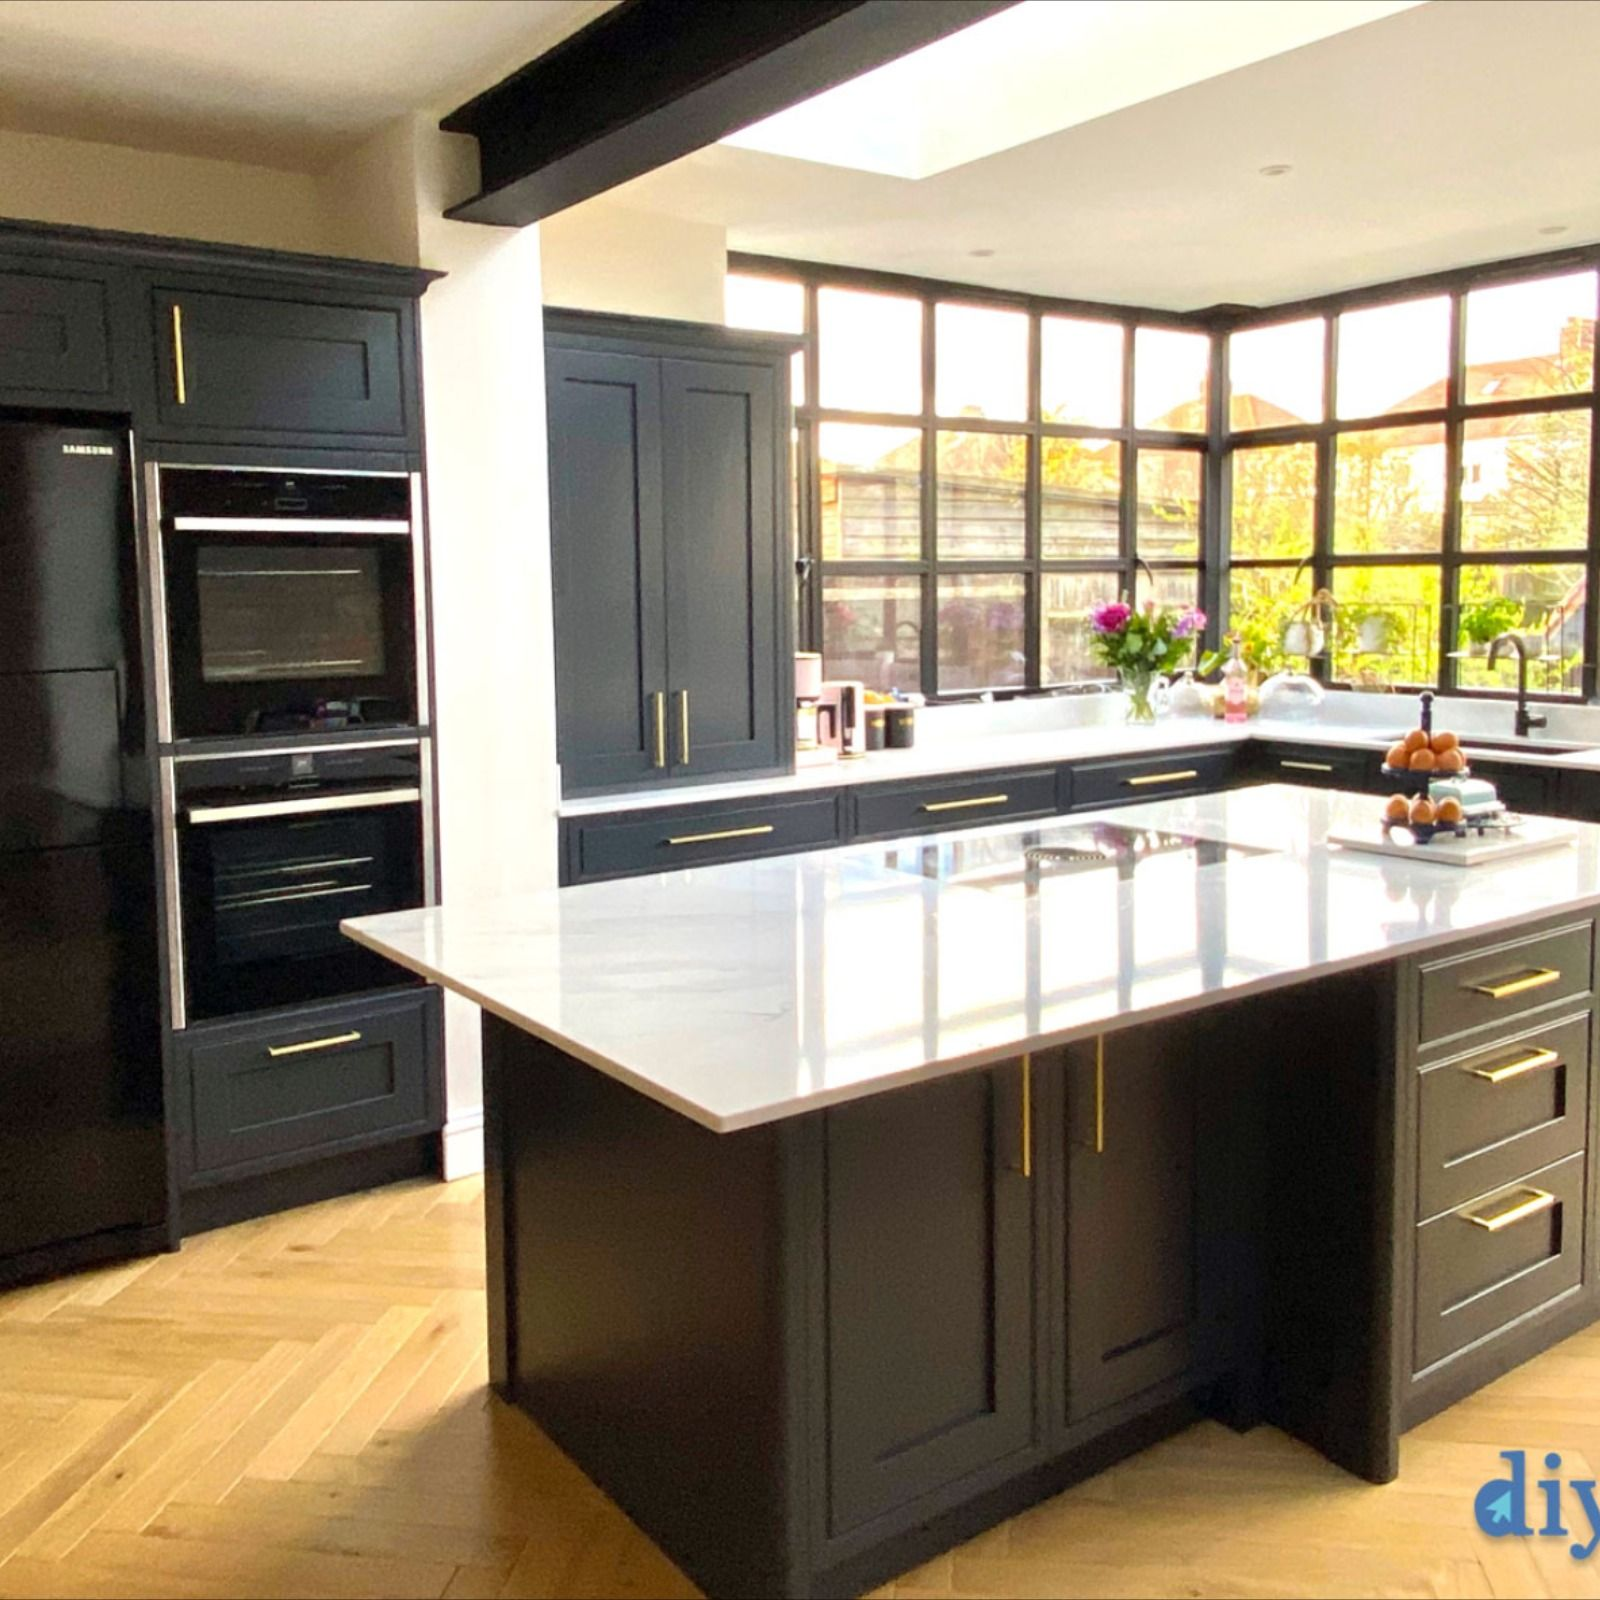 Helmsley Bespoke Painted in 2020 Diy kitchen, Cheap